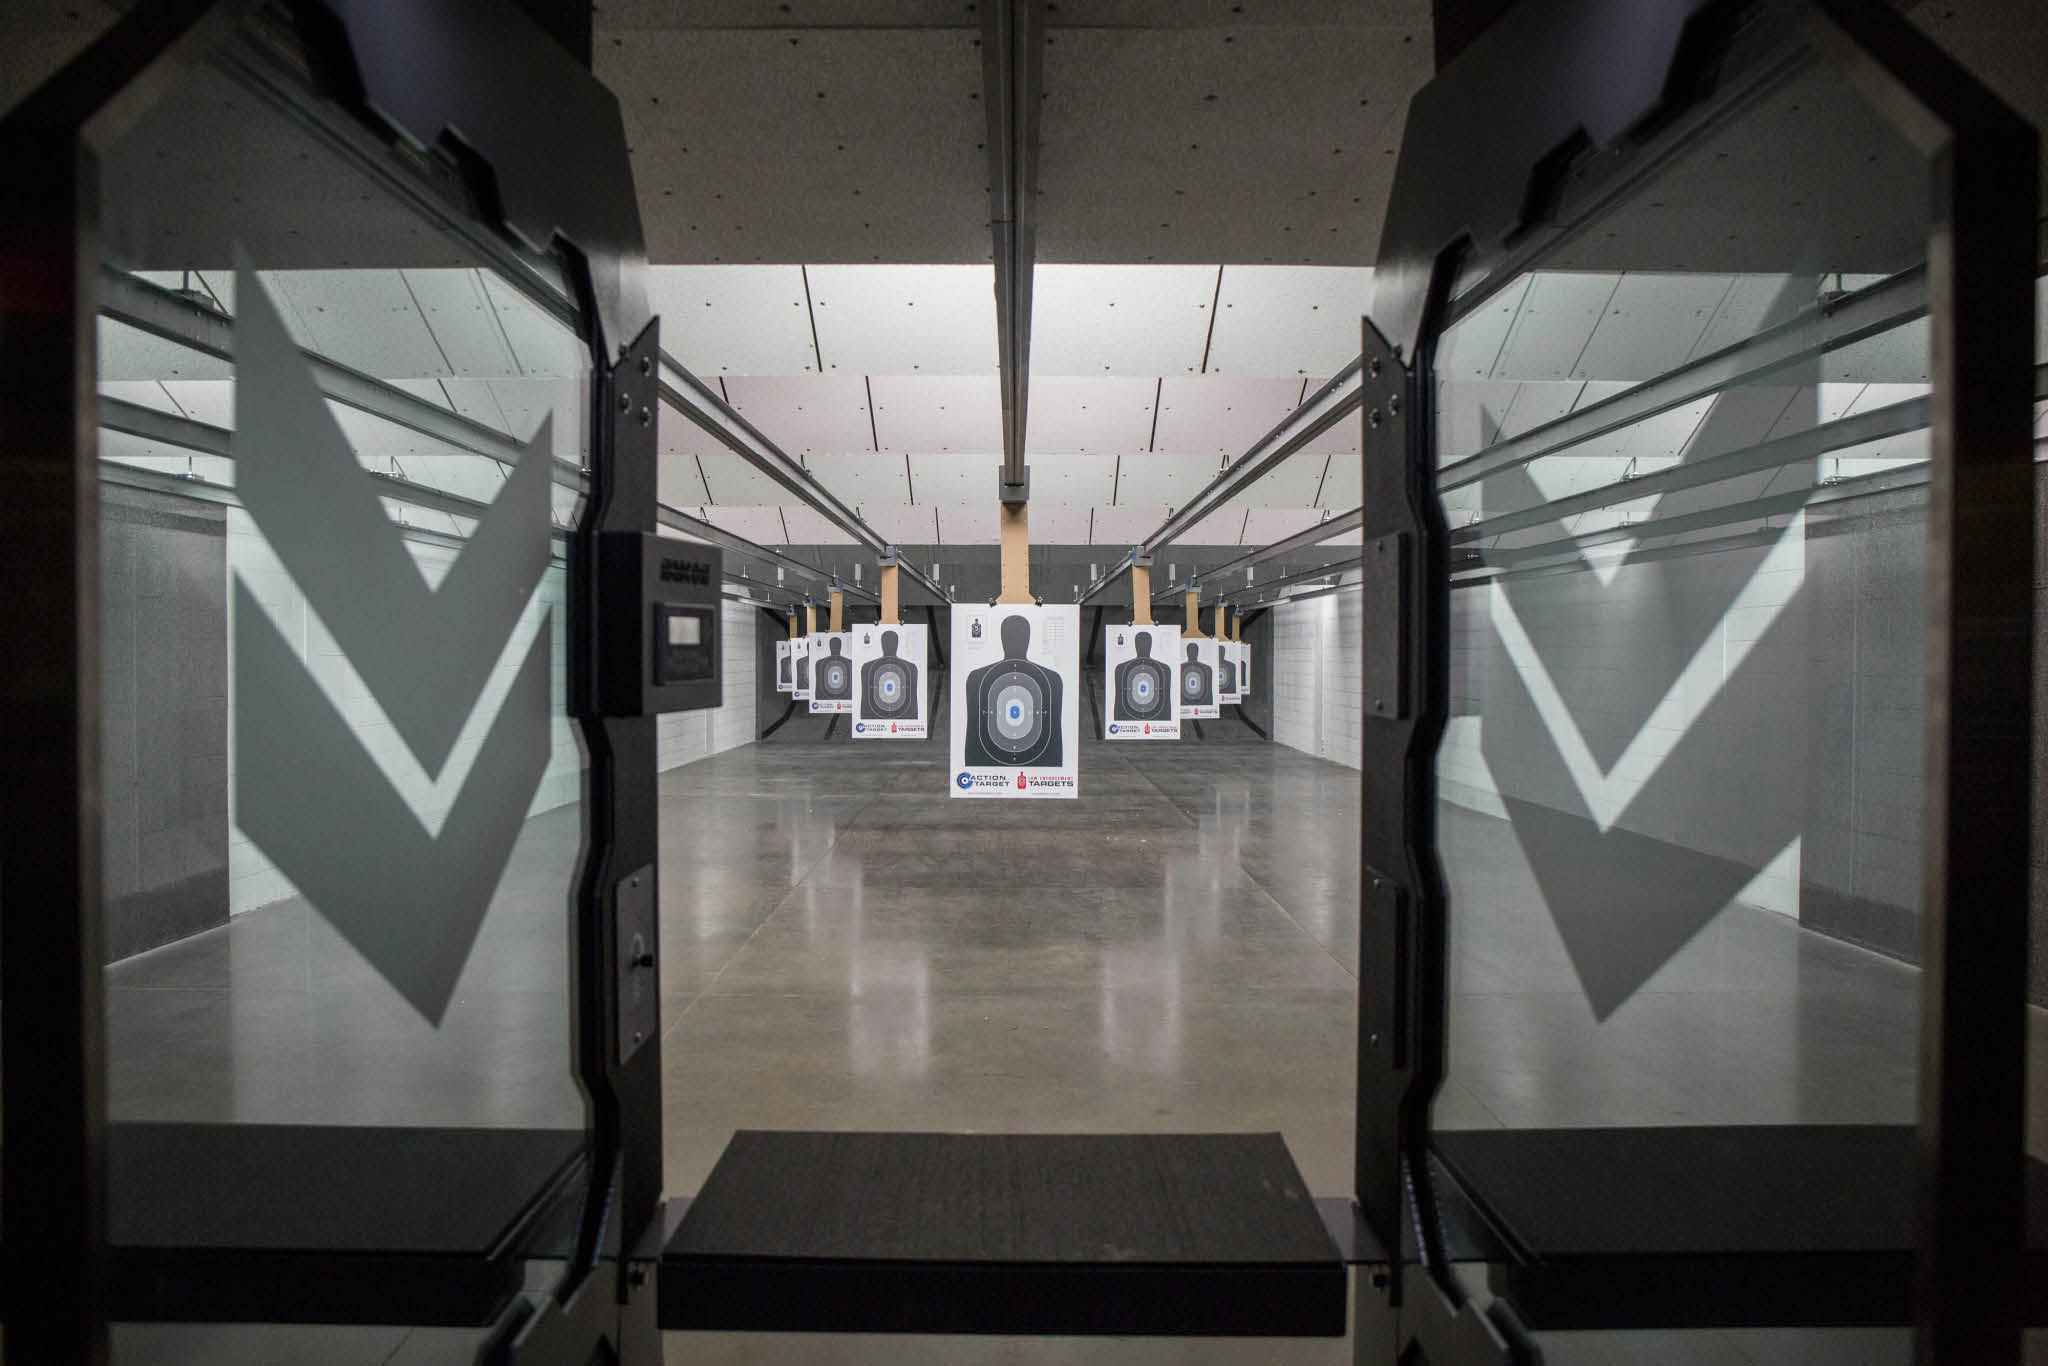 firing range, gun range, ammunition, lessons, groups, targets, moving targets; waldorf, md